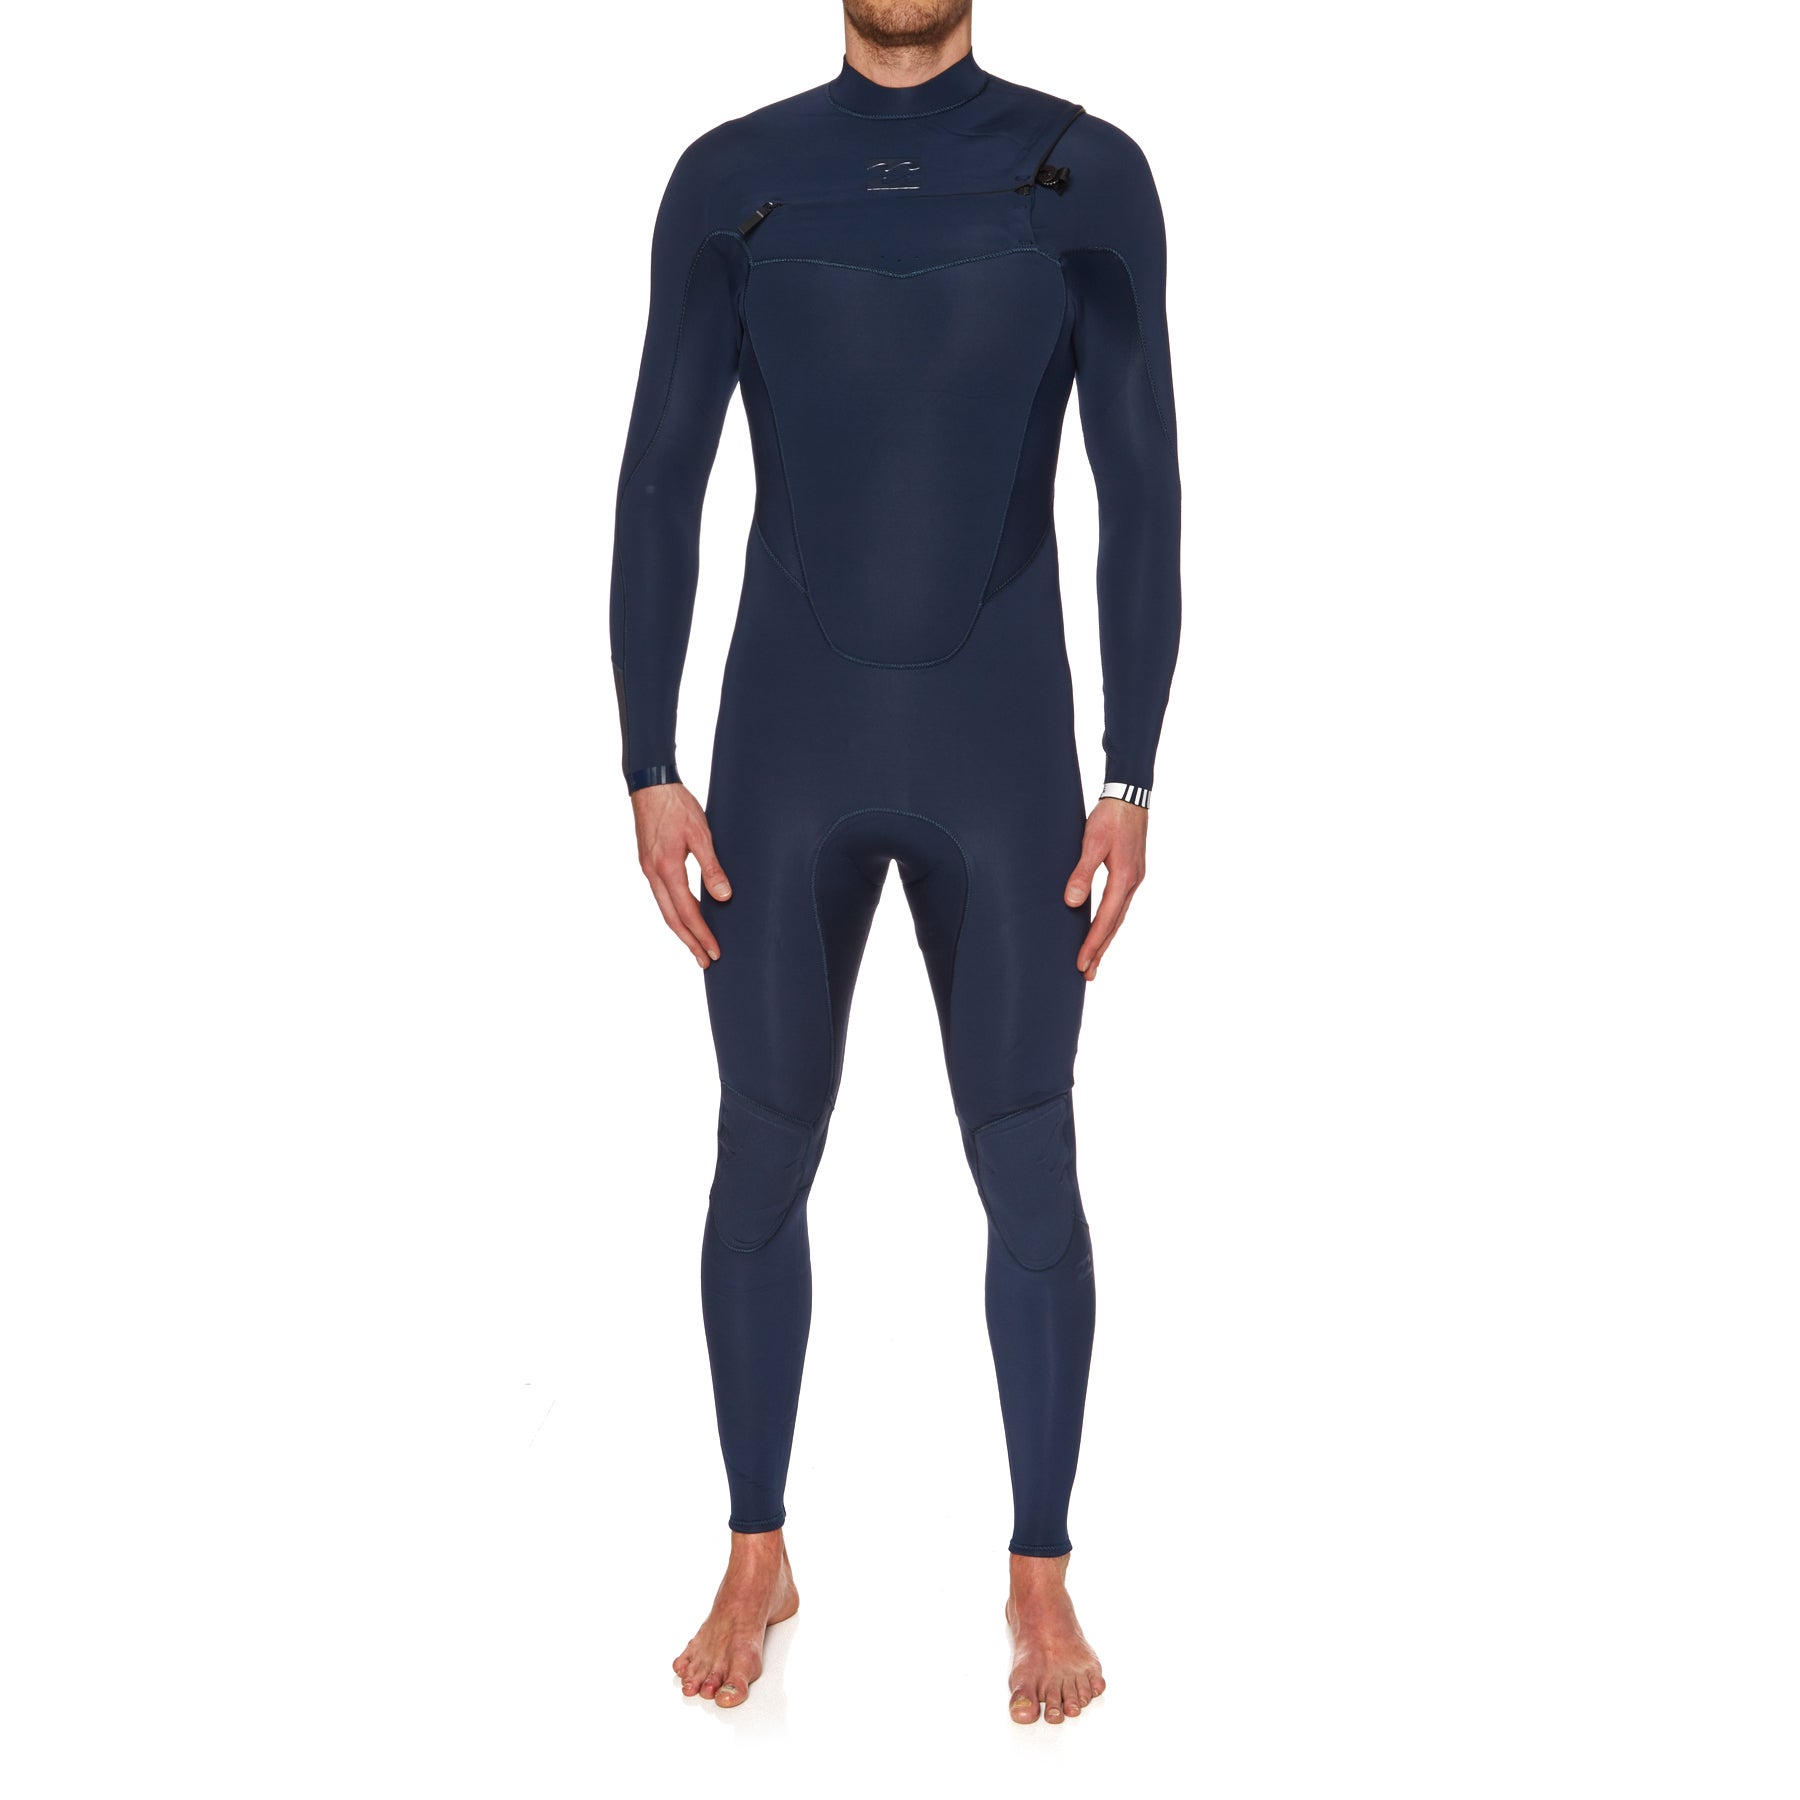 Billabong Absolute 3/2mm 2018 Chest Zip Wetsuit - Navy